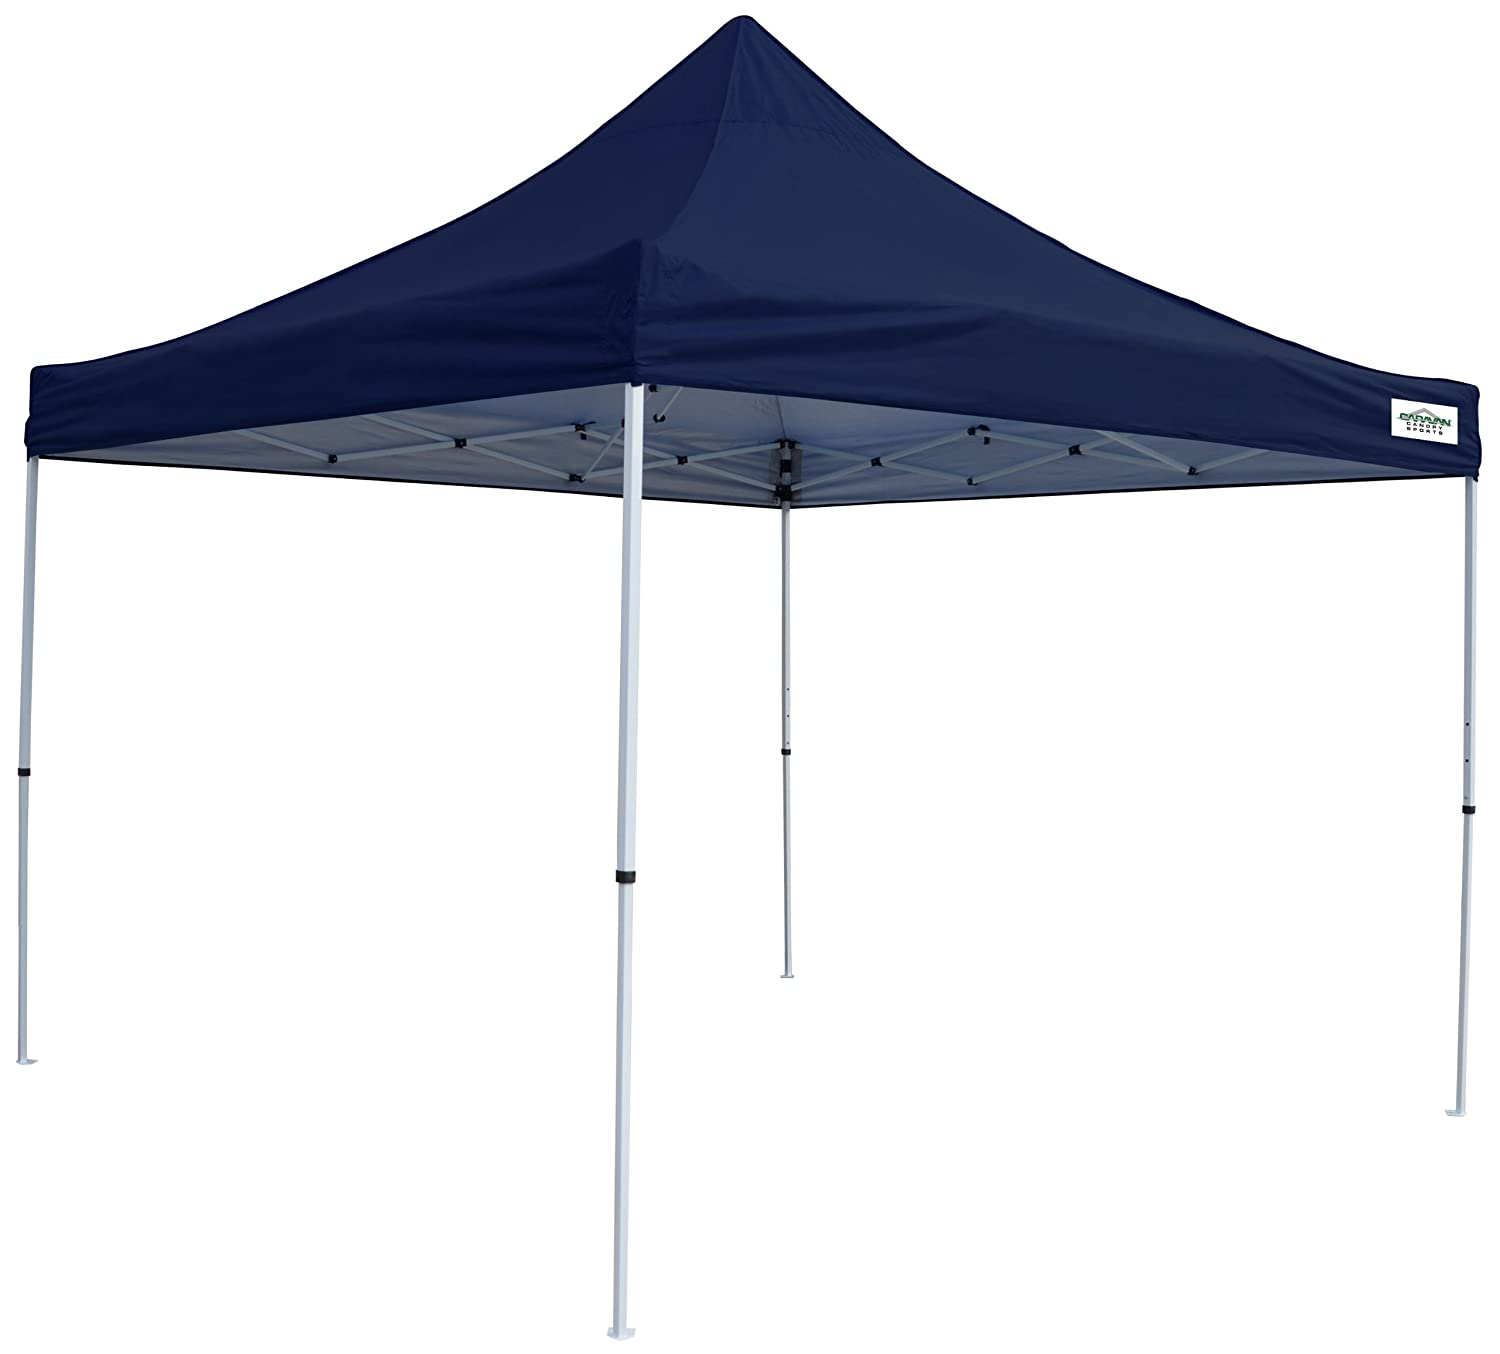 Amazon Caravan Canopy M Series 2 Pro 10 X Foot Straight Leg Kit Navy Blue Garden Outdoor